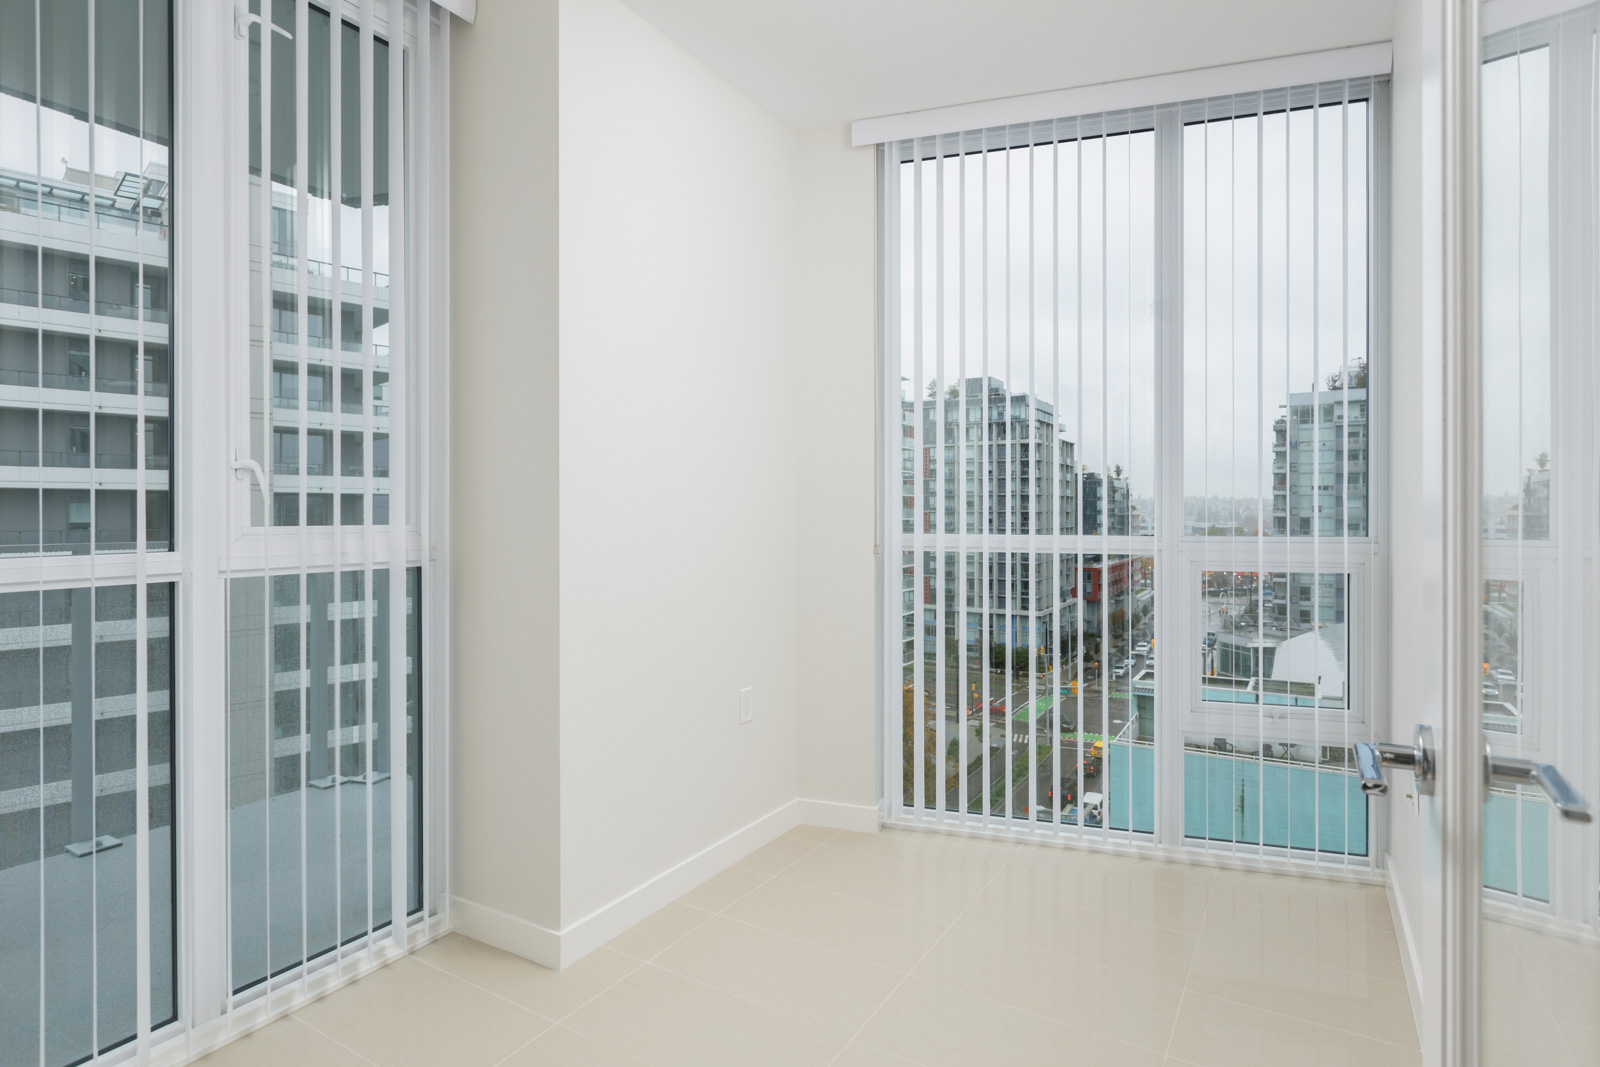 windows with open blinds in living room of condo